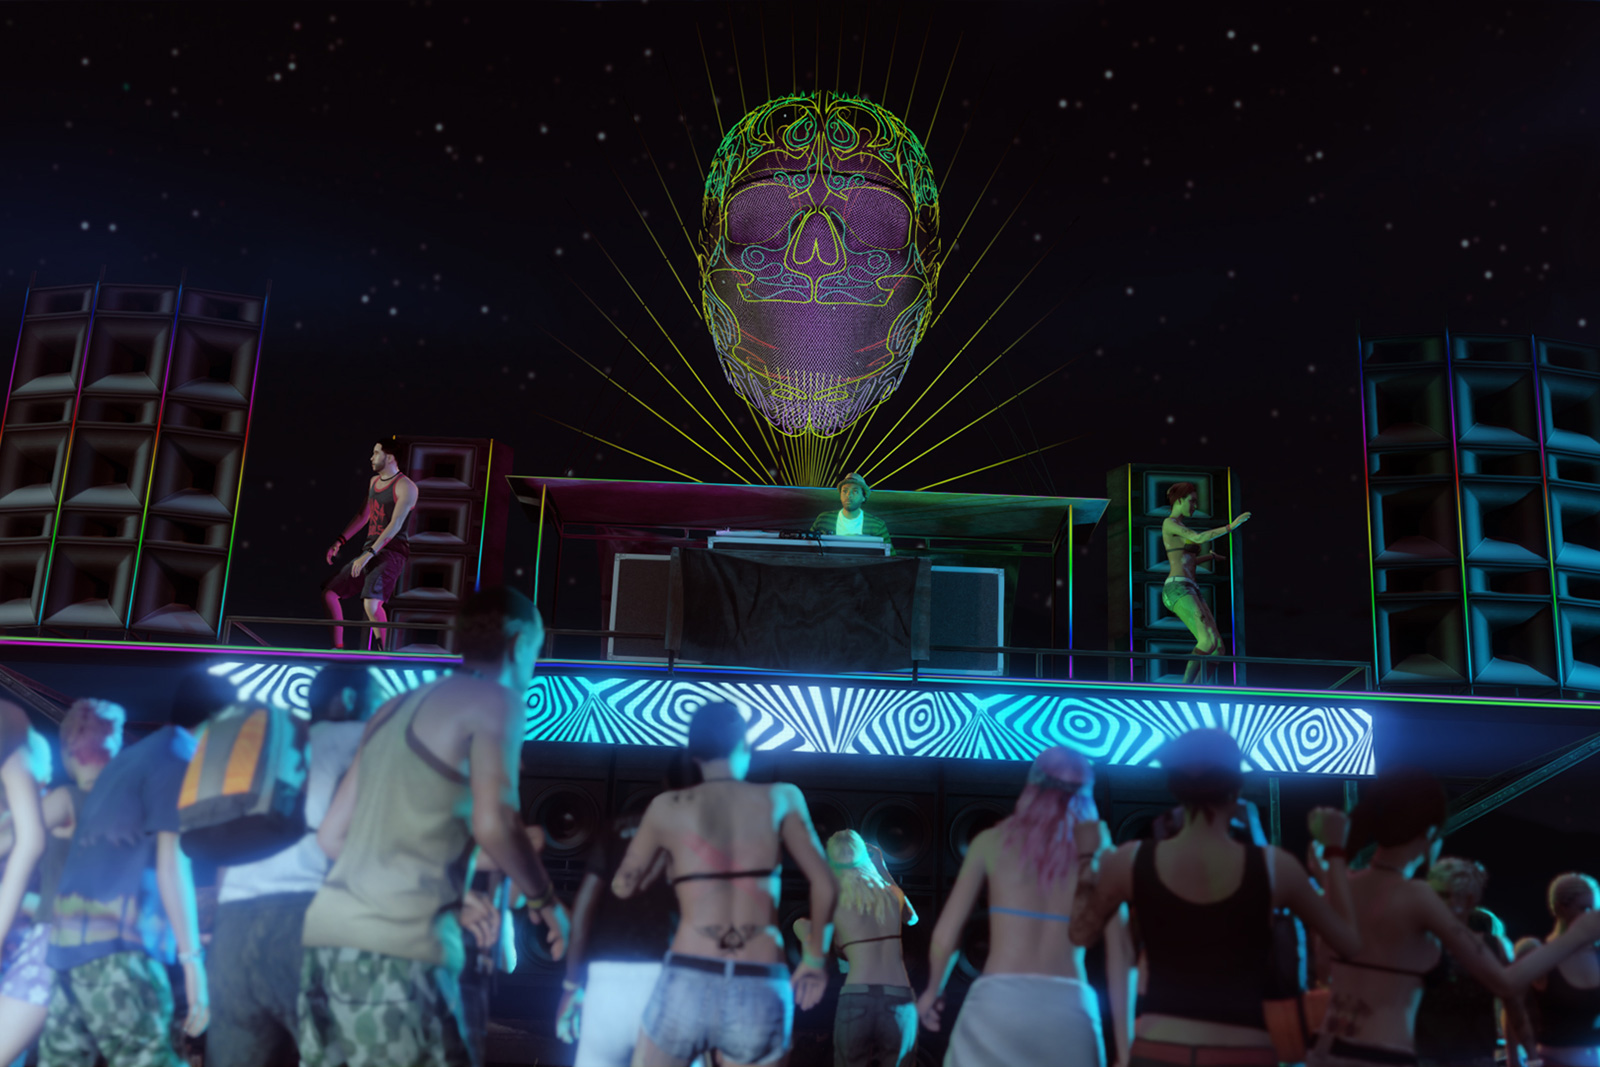 Rockstar launches a record label to 'elevate' dance music | Engadget